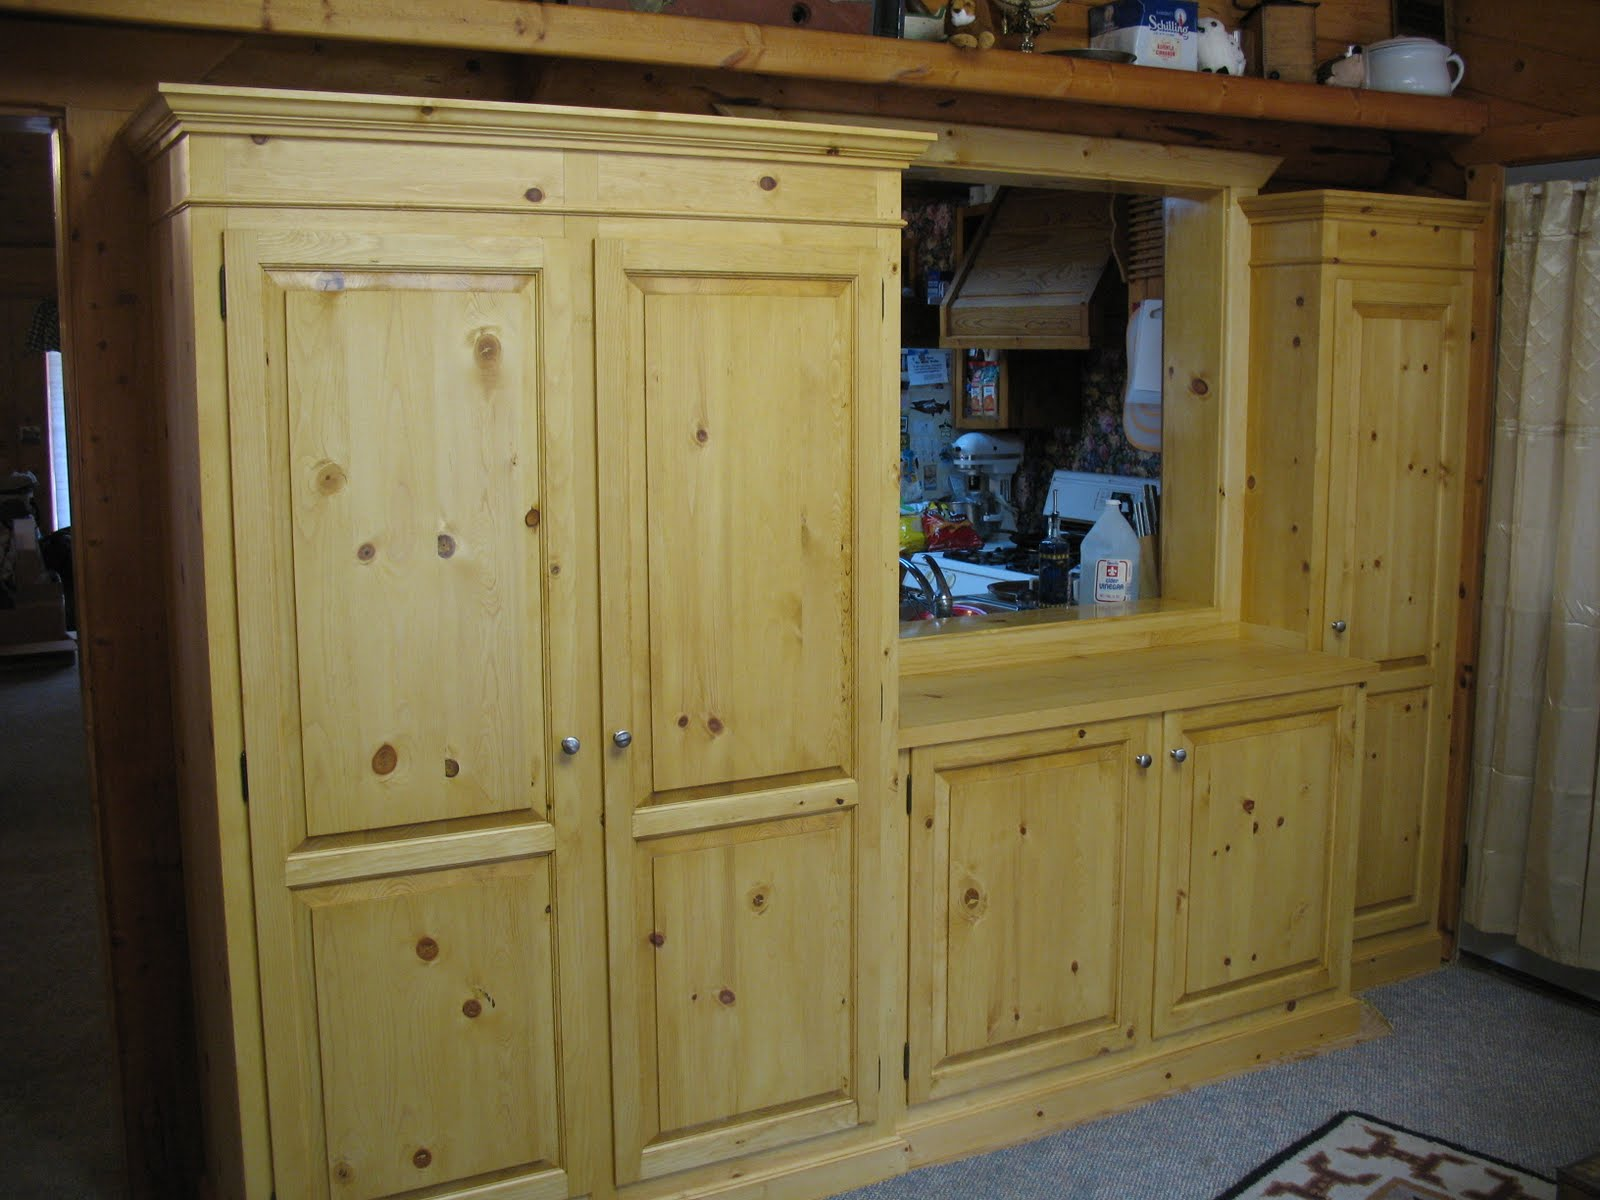 Depressioneradesigns pine pantry storage cabinets for Kitchen pantry cabinet